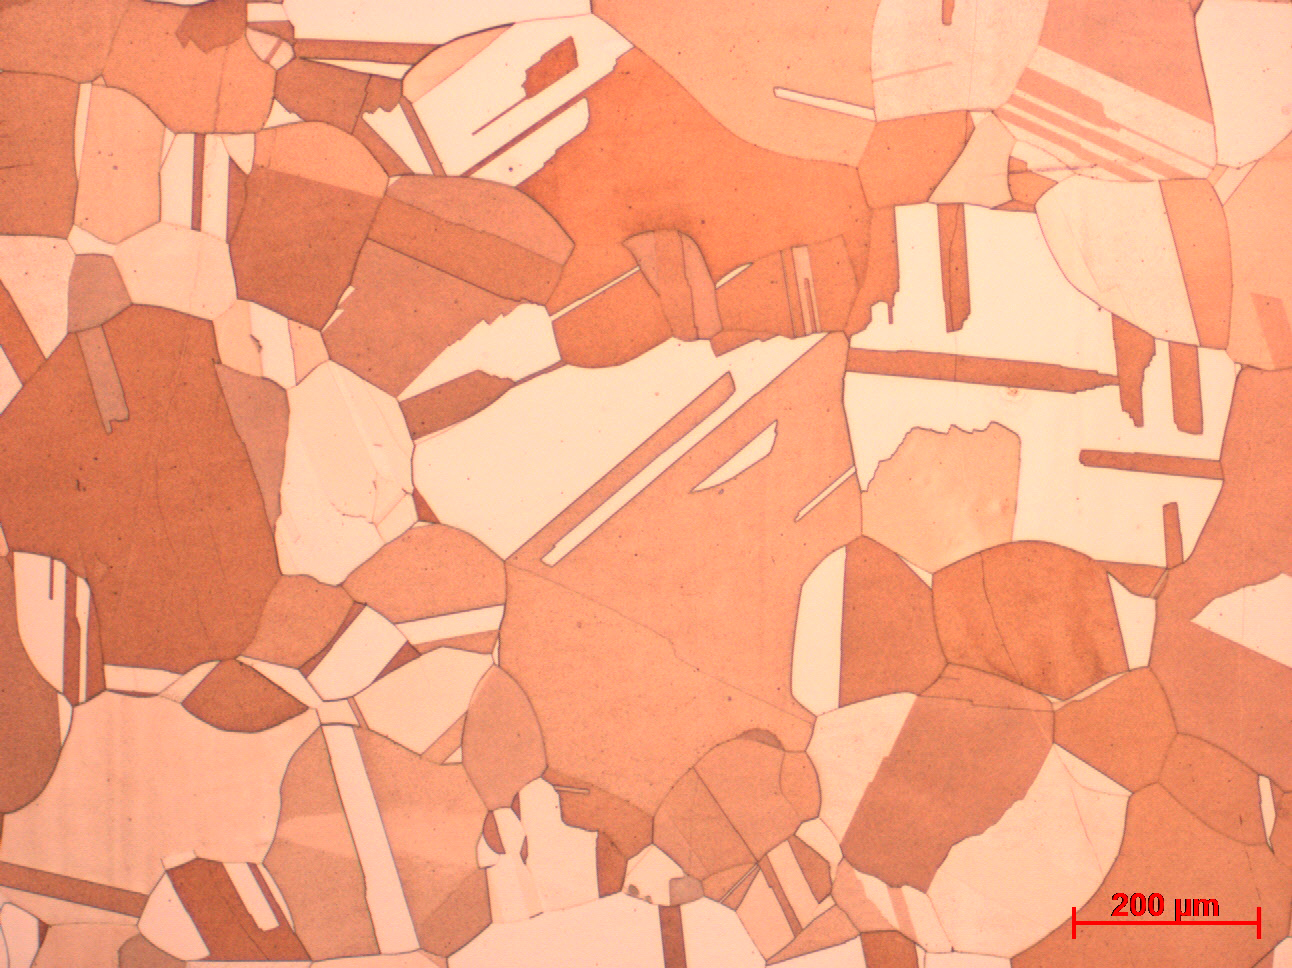 Metallurgical testing image of copper microstructure